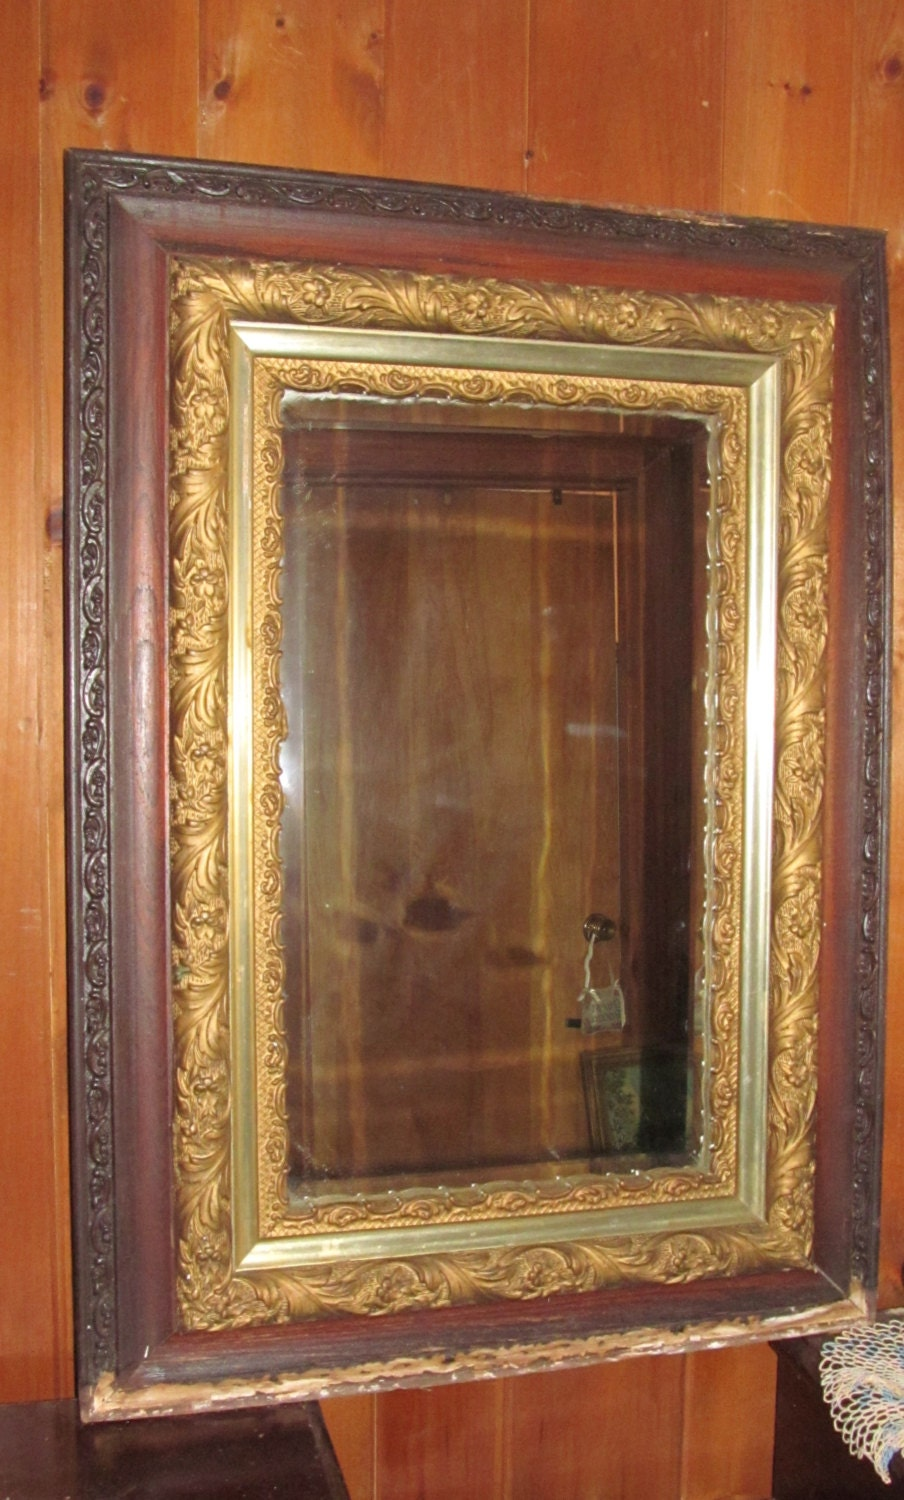 Antique Victorian Parlor Mirror Large Ornate Mirror Wood